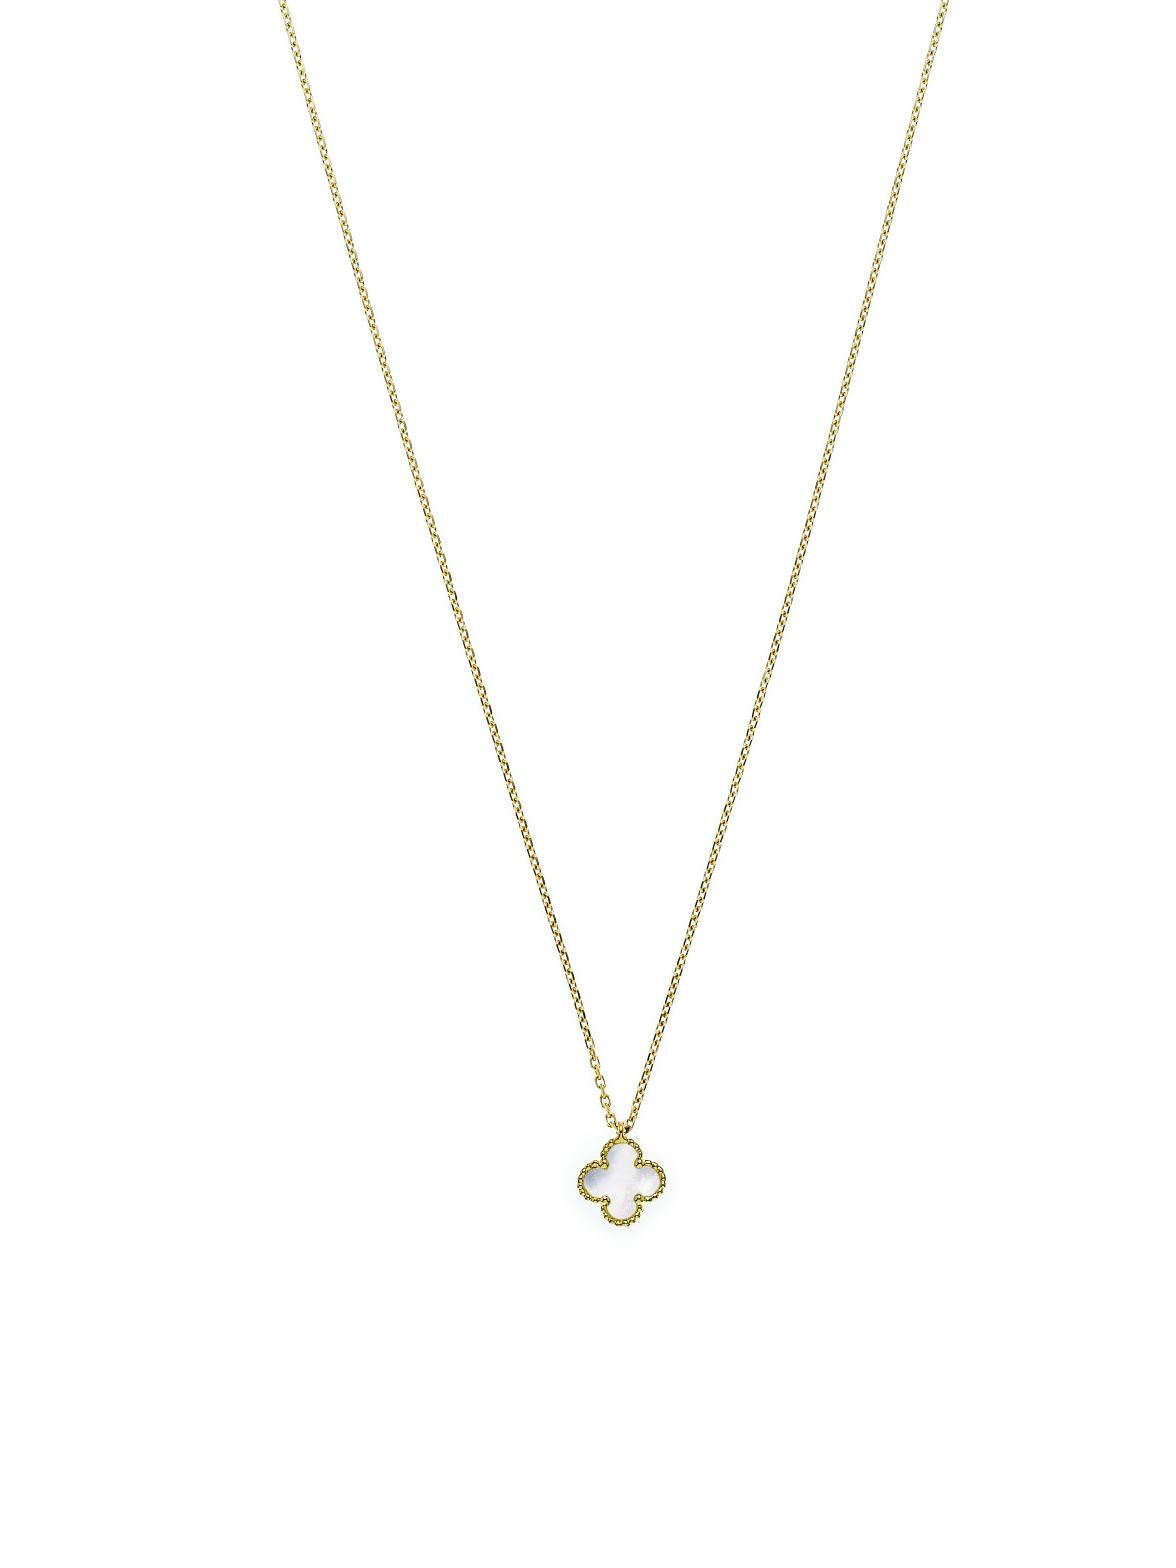 Van Cleef & Arpels 18k Yellow Gold Sweet Alhambra Pendant Necklace. 18k  Yellow Gold with